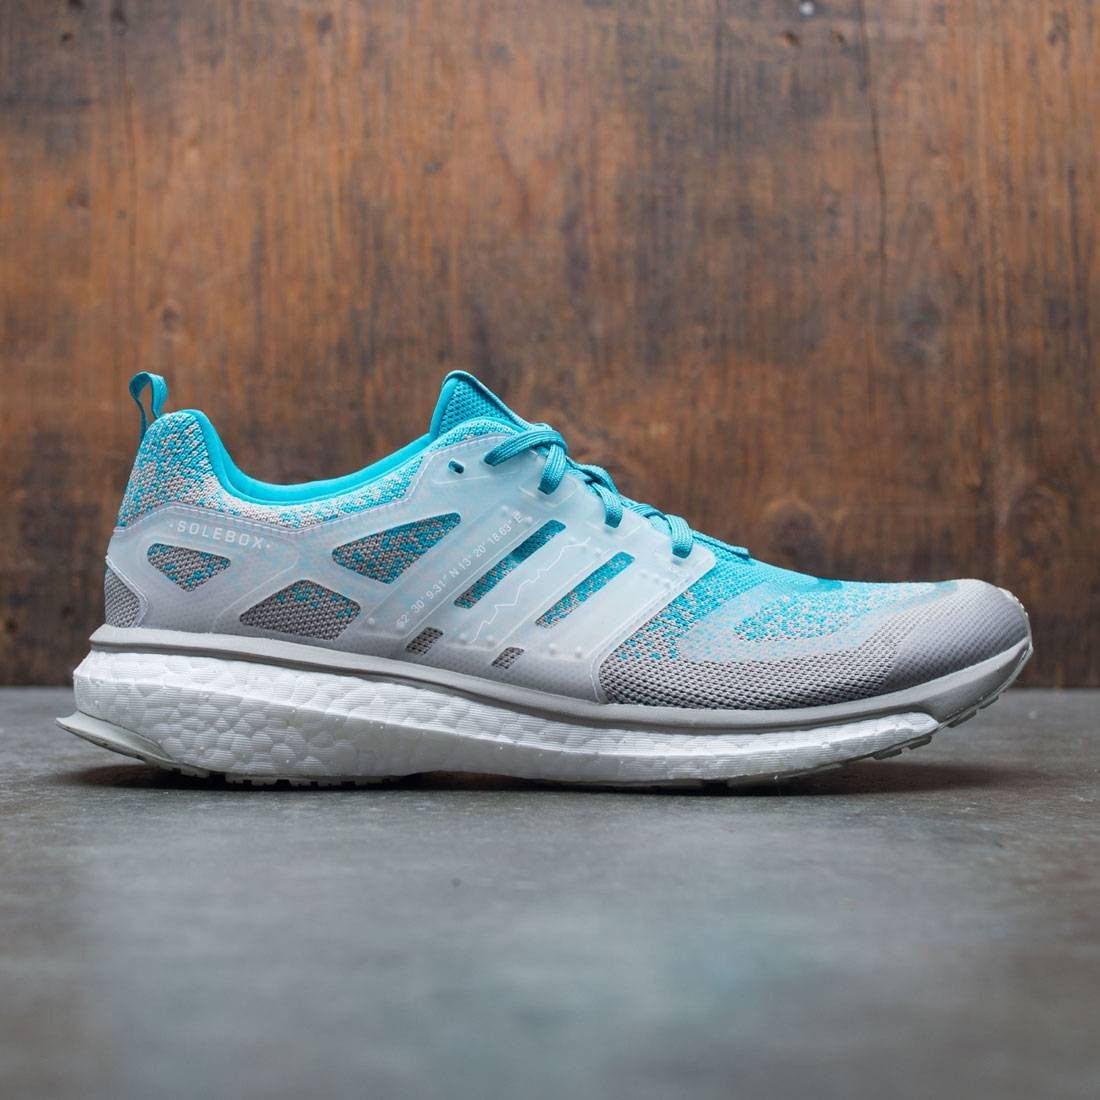 finest selection 85534 6eaee Adidas Consortium x Packer x Solebox Men Energy Boost Sneaker Exchange  (blue / energy blue / sesame / gum)